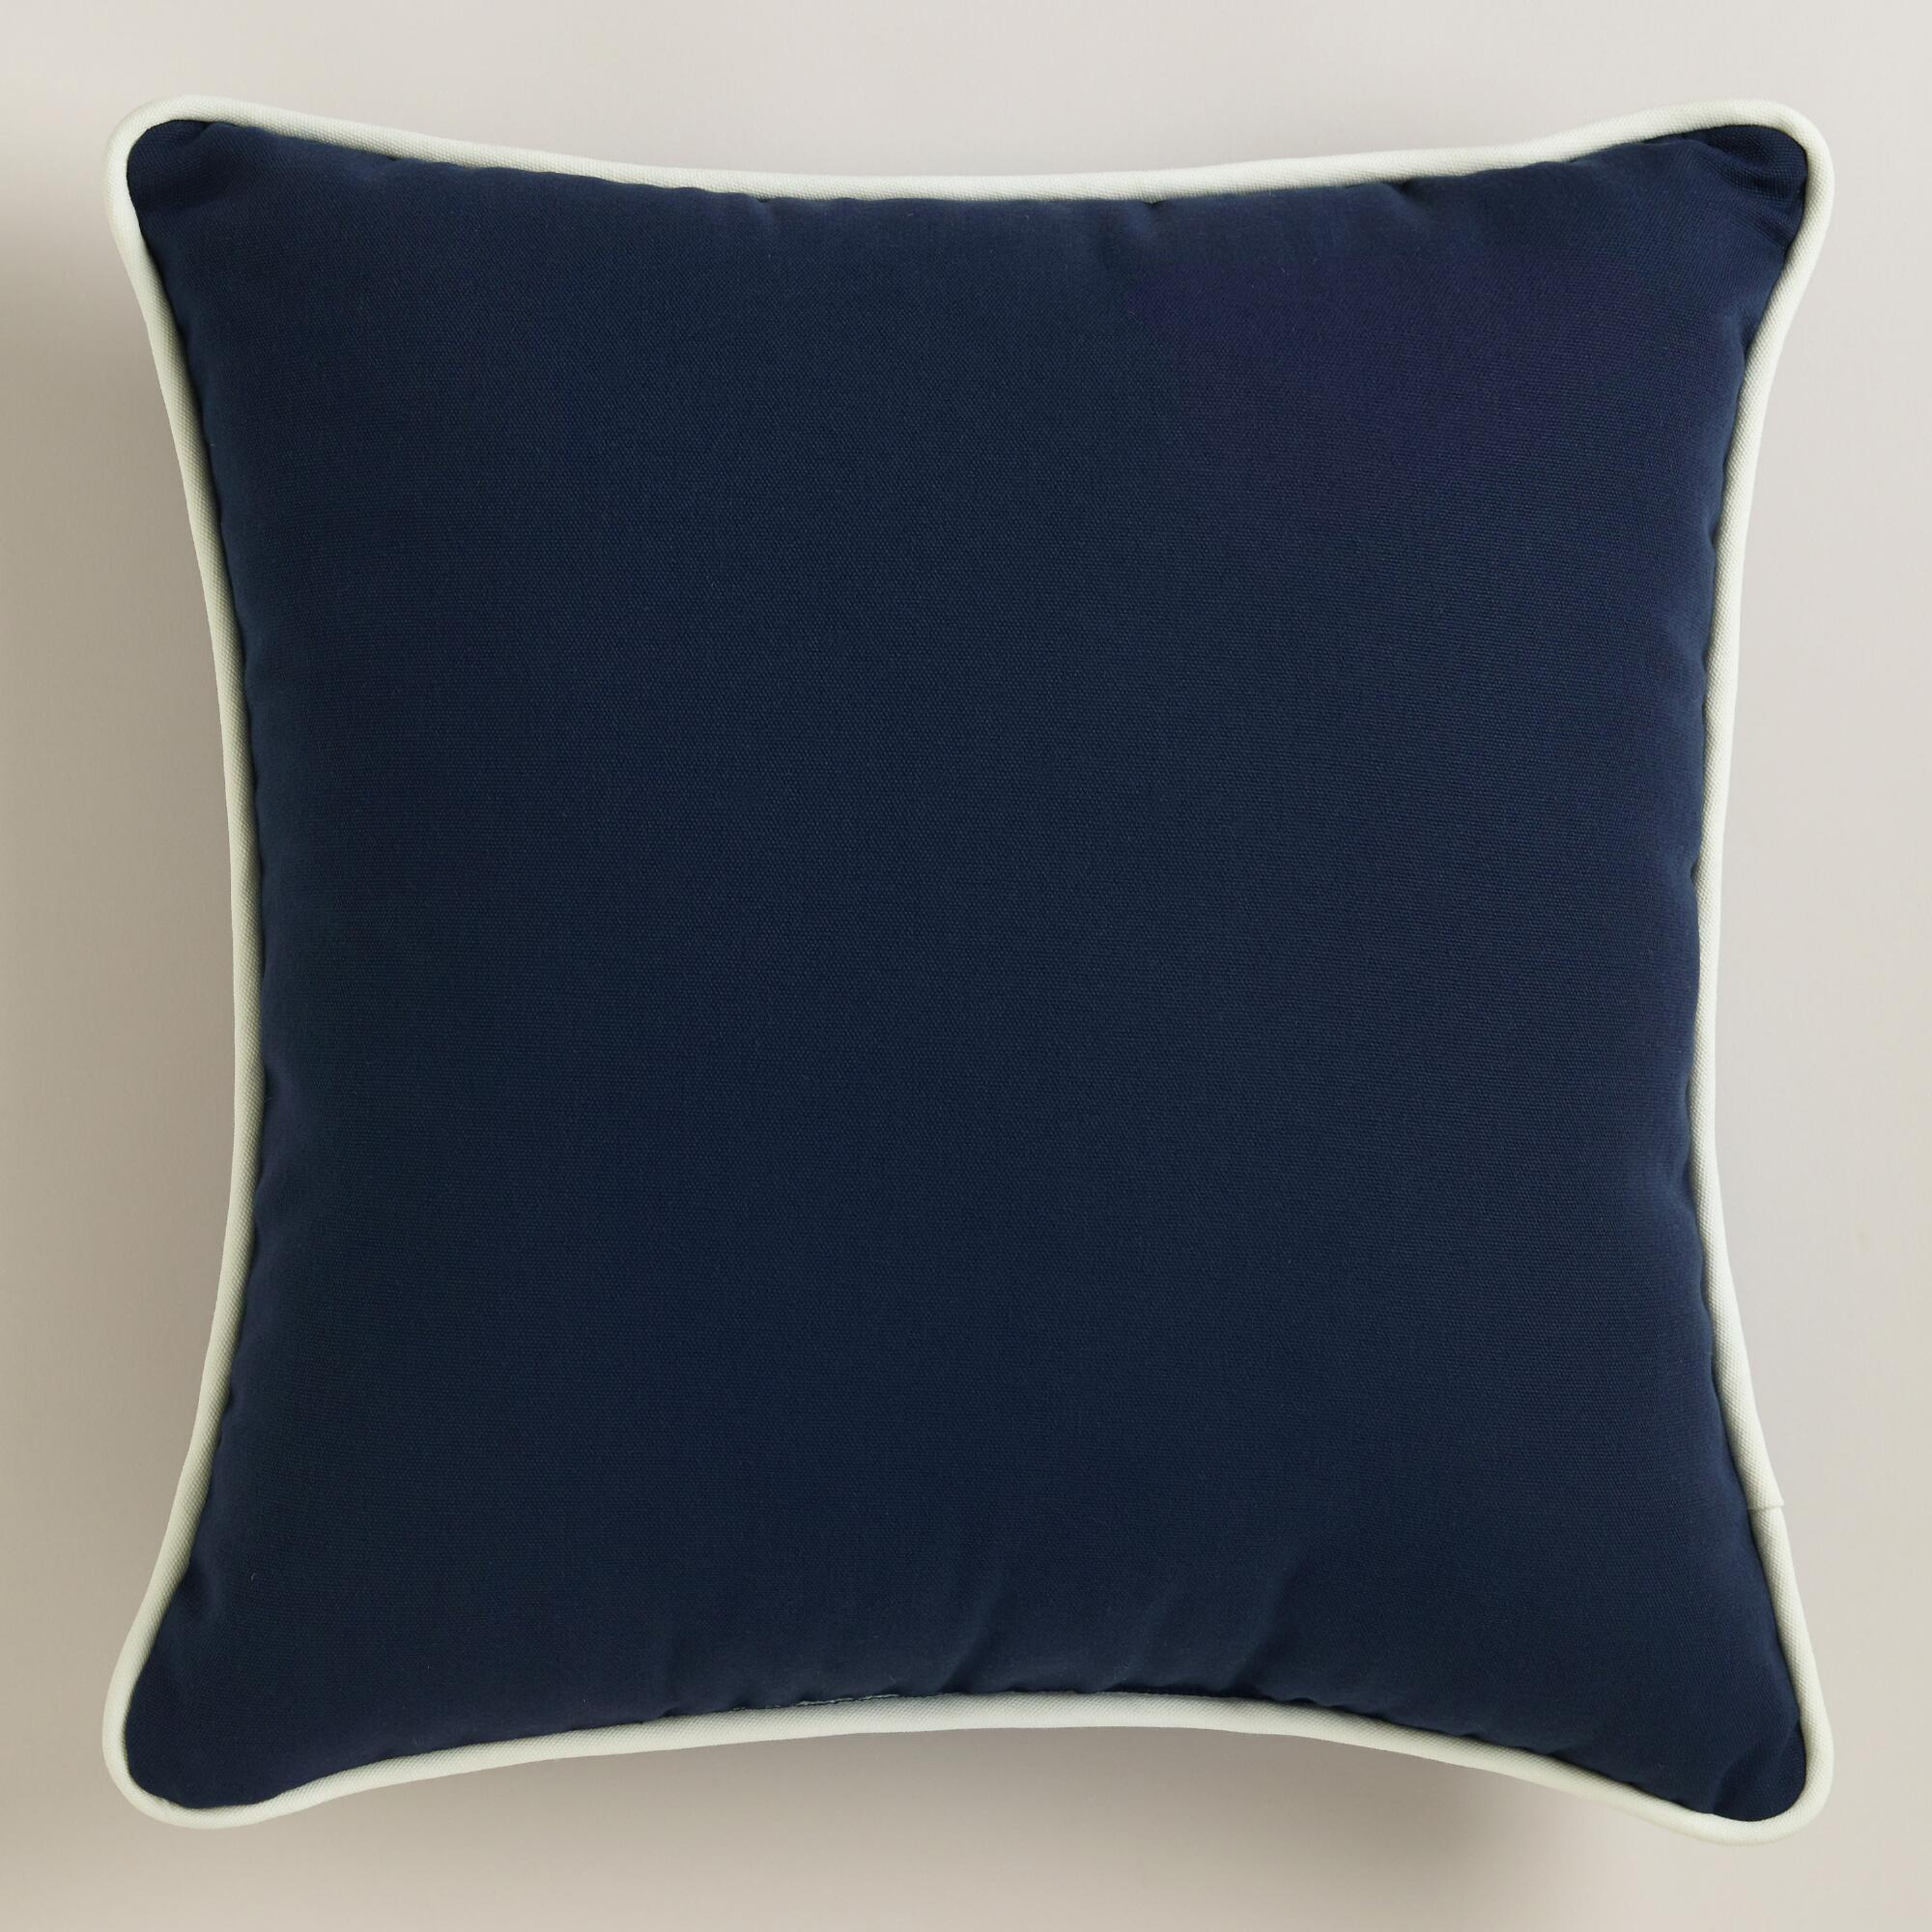 Dark Blue Throw Pillow : Dark Blue Outdoor Throw Pillow with Piping World Market